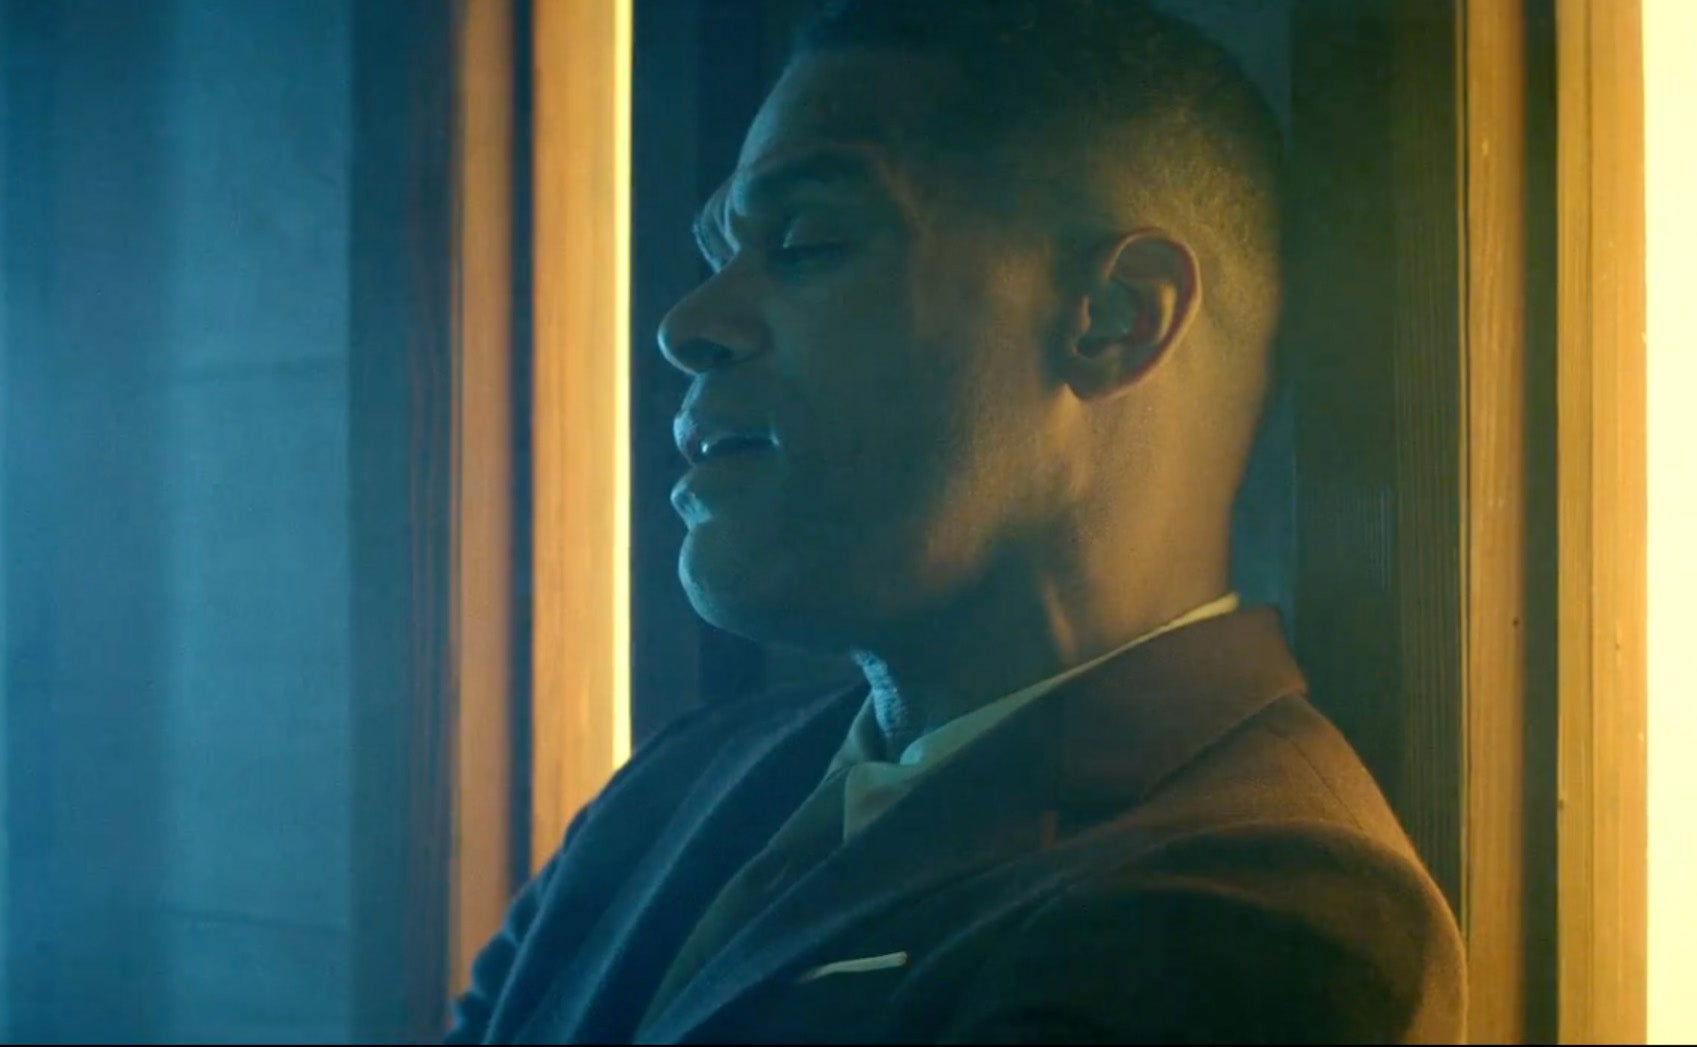 Maxwell Takes The Art Of Seduction To New Heights In Visual For '1990x'